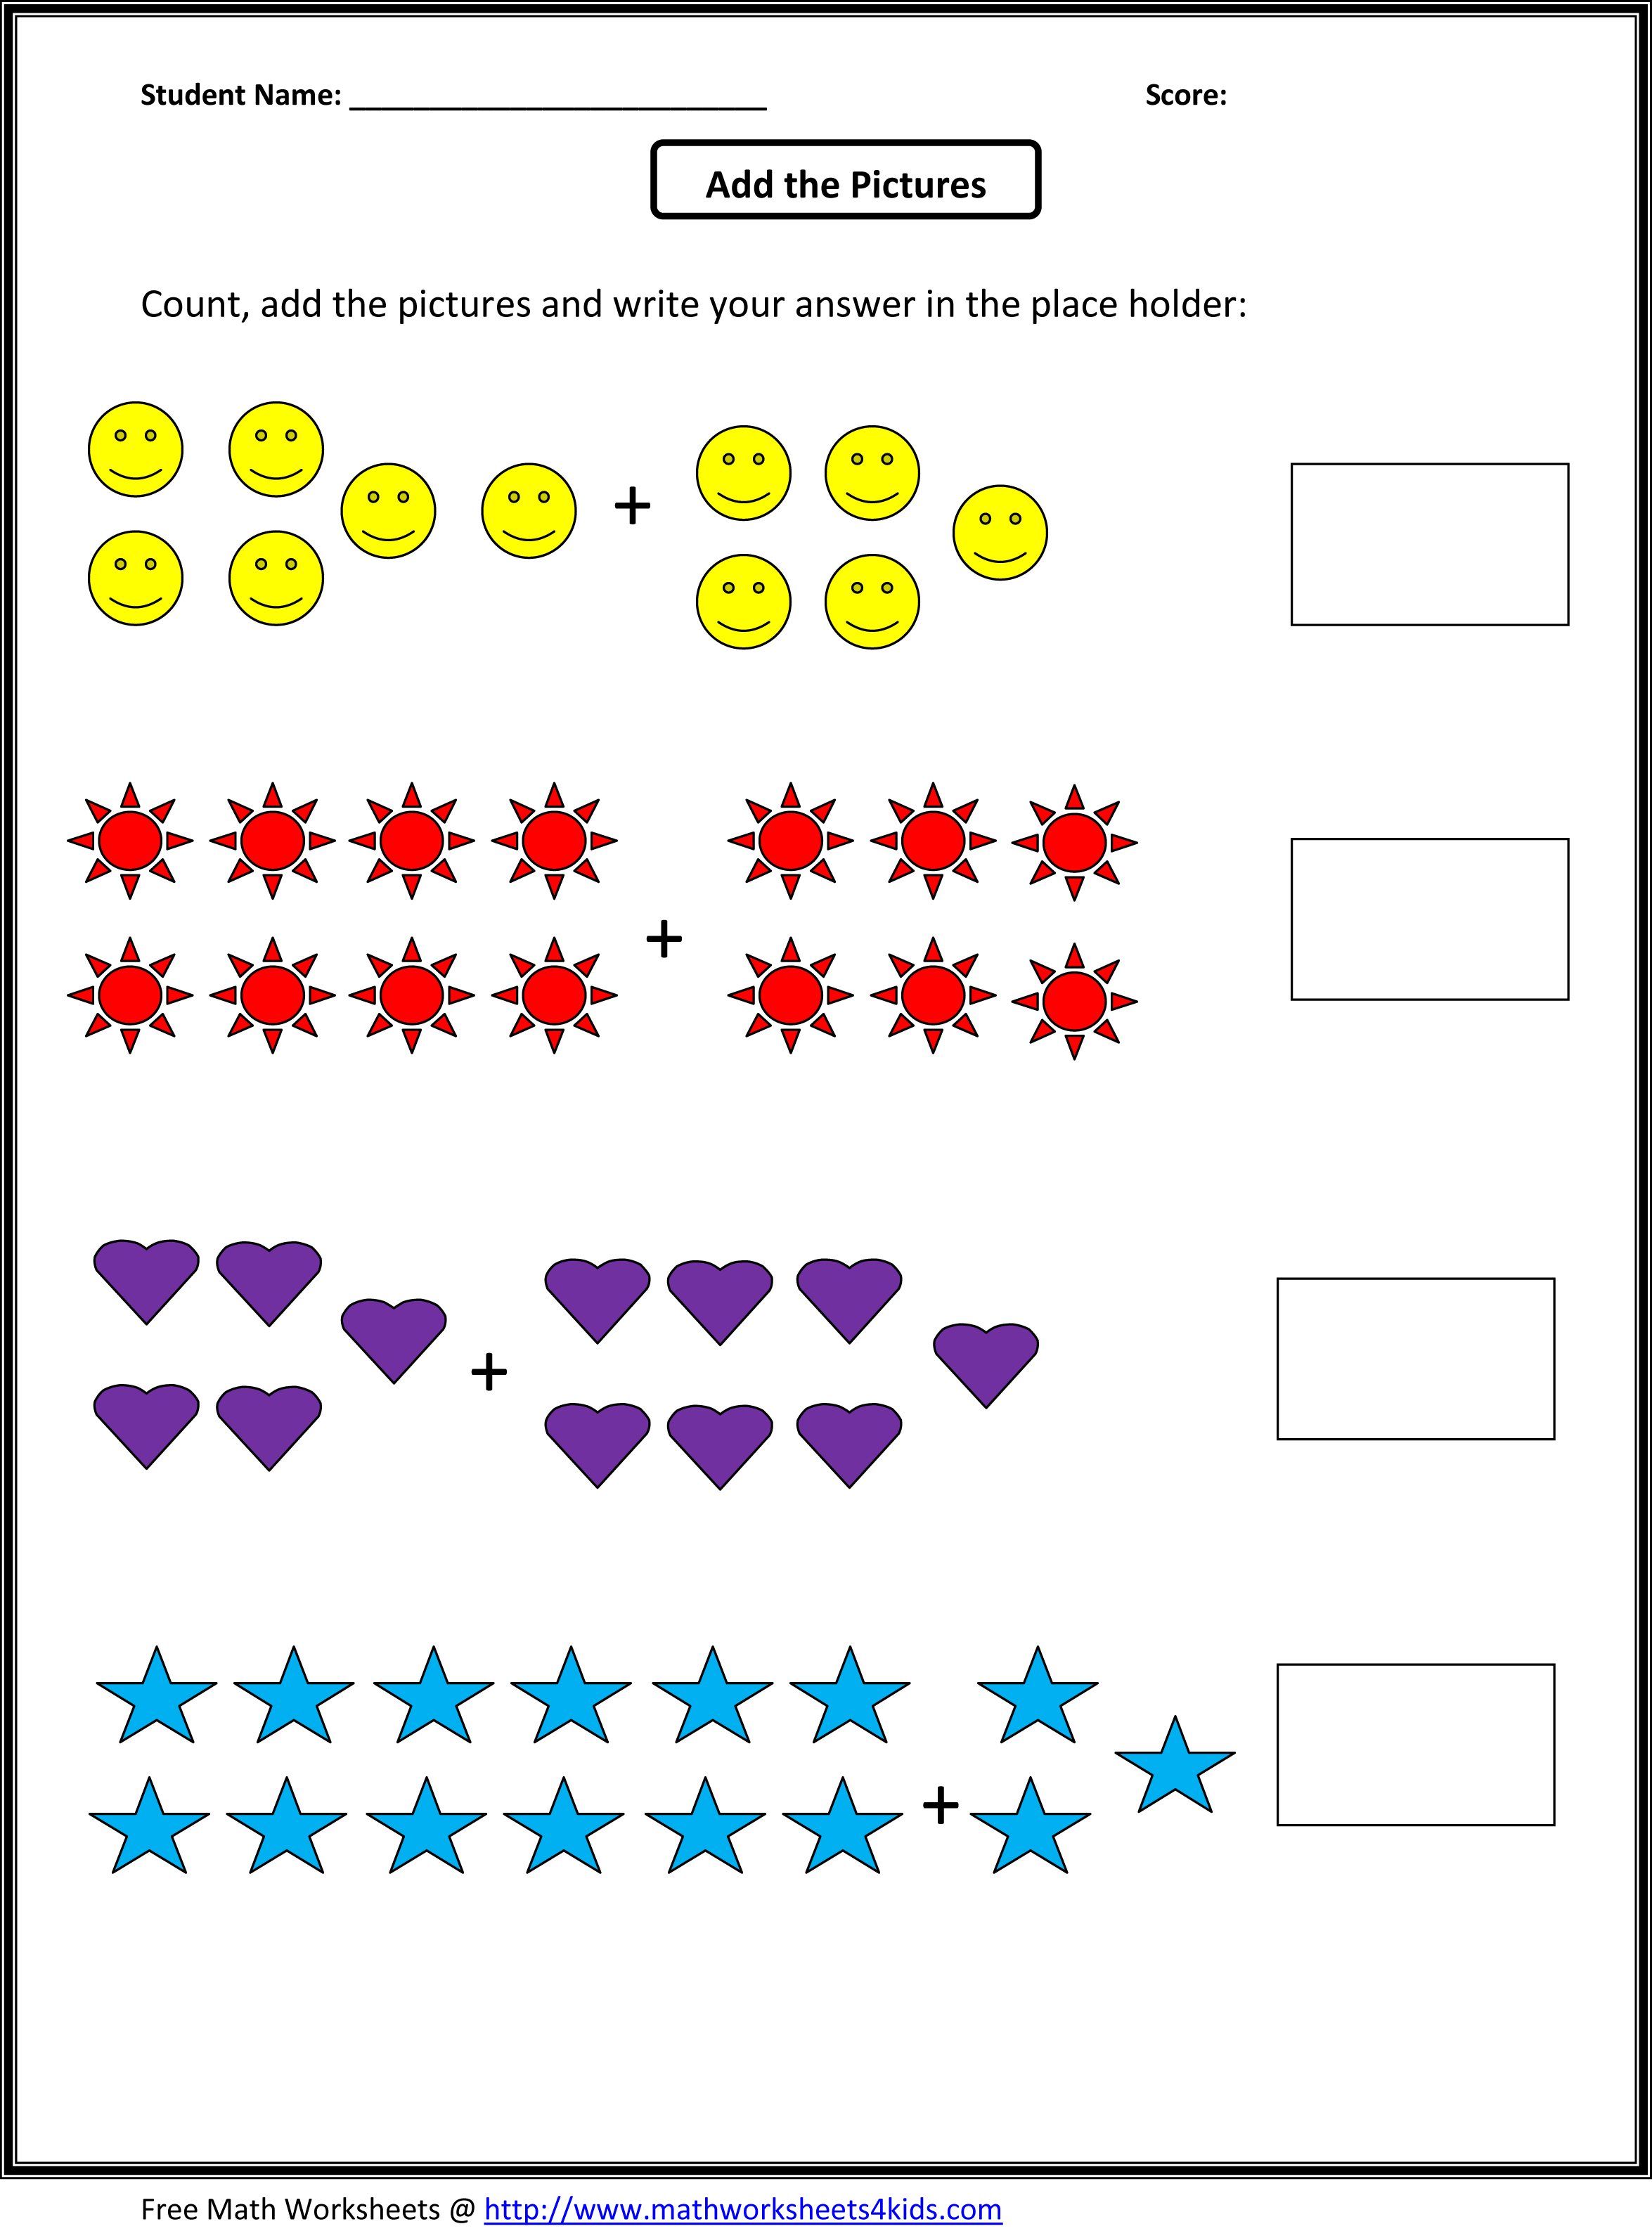 Weirdmailus  Stunning Grade  Maths Worksheet  Reocurent With Hot Math Worksheets For St Grade Free  Reocurent With Attractive Systems Of Equations Practice Worksheet Also Patterns And Sequences Worksheet In Addition Halloween Worksheets Printables And Sixth Grade Social Studies Worksheets As Well As Number  Worksheets Additionally Th Grade Math Common Core Worksheets From Reocurentcom With Weirdmailus  Hot Grade  Maths Worksheet  Reocurent With Attractive Math Worksheets For St Grade Free  Reocurent And Stunning Systems Of Equations Practice Worksheet Also Patterns And Sequences Worksheet In Addition Halloween Worksheets Printables From Reocurentcom